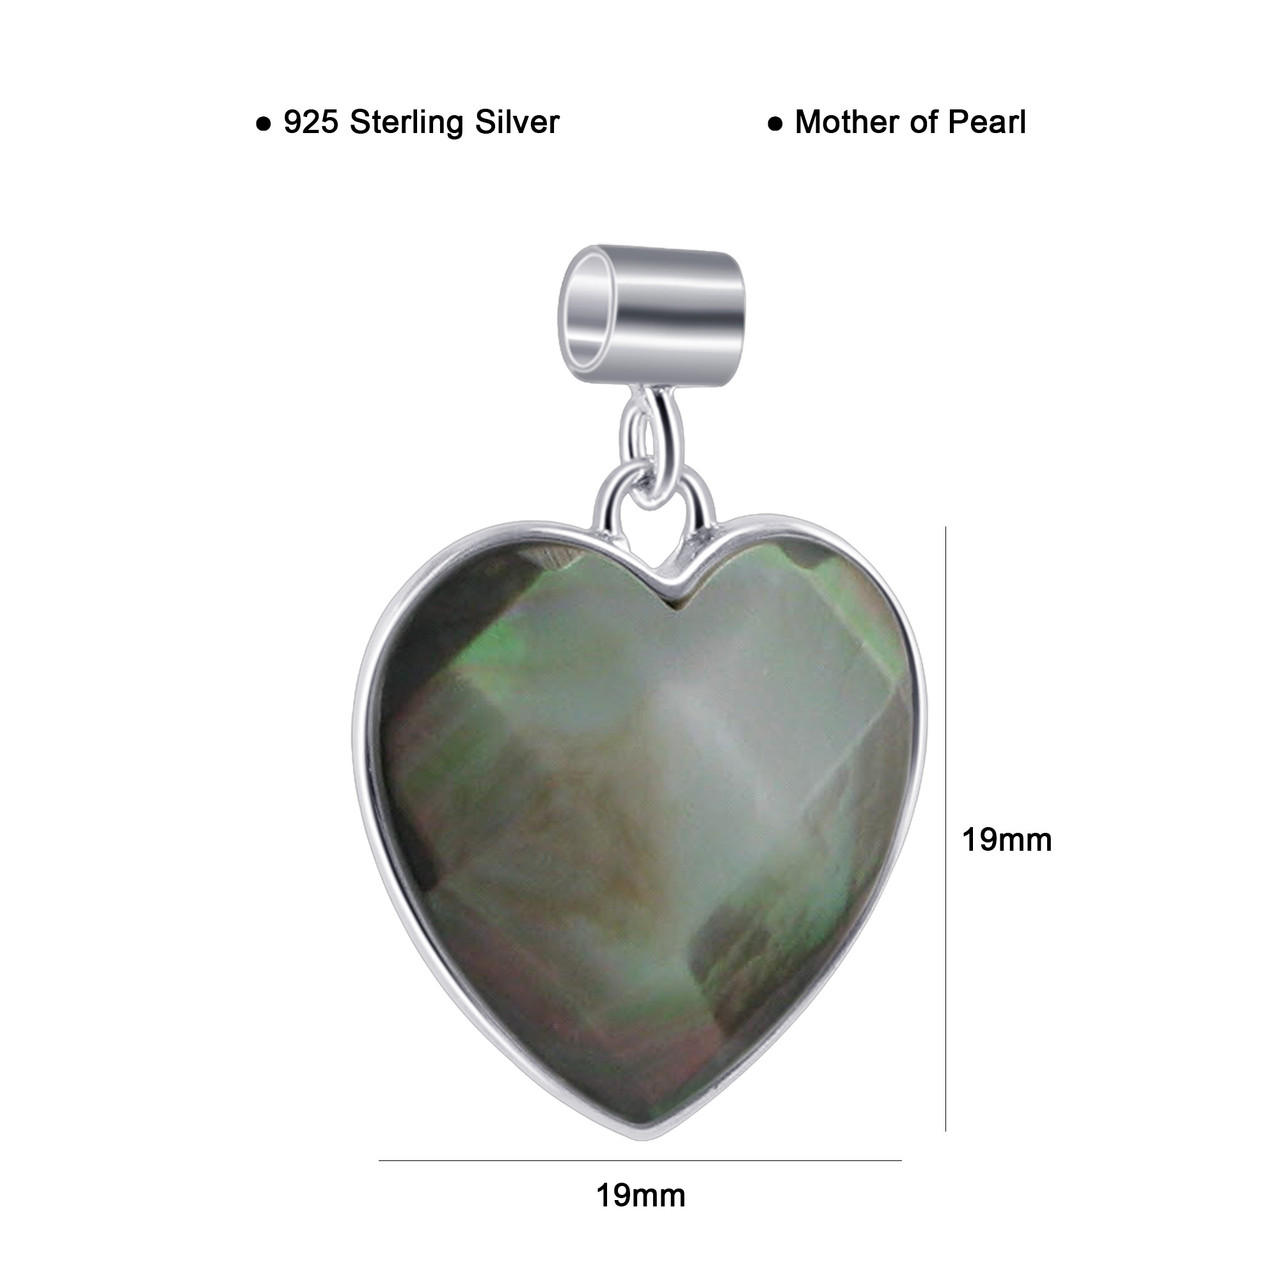 Black Mother of Pearl Heart Pendant